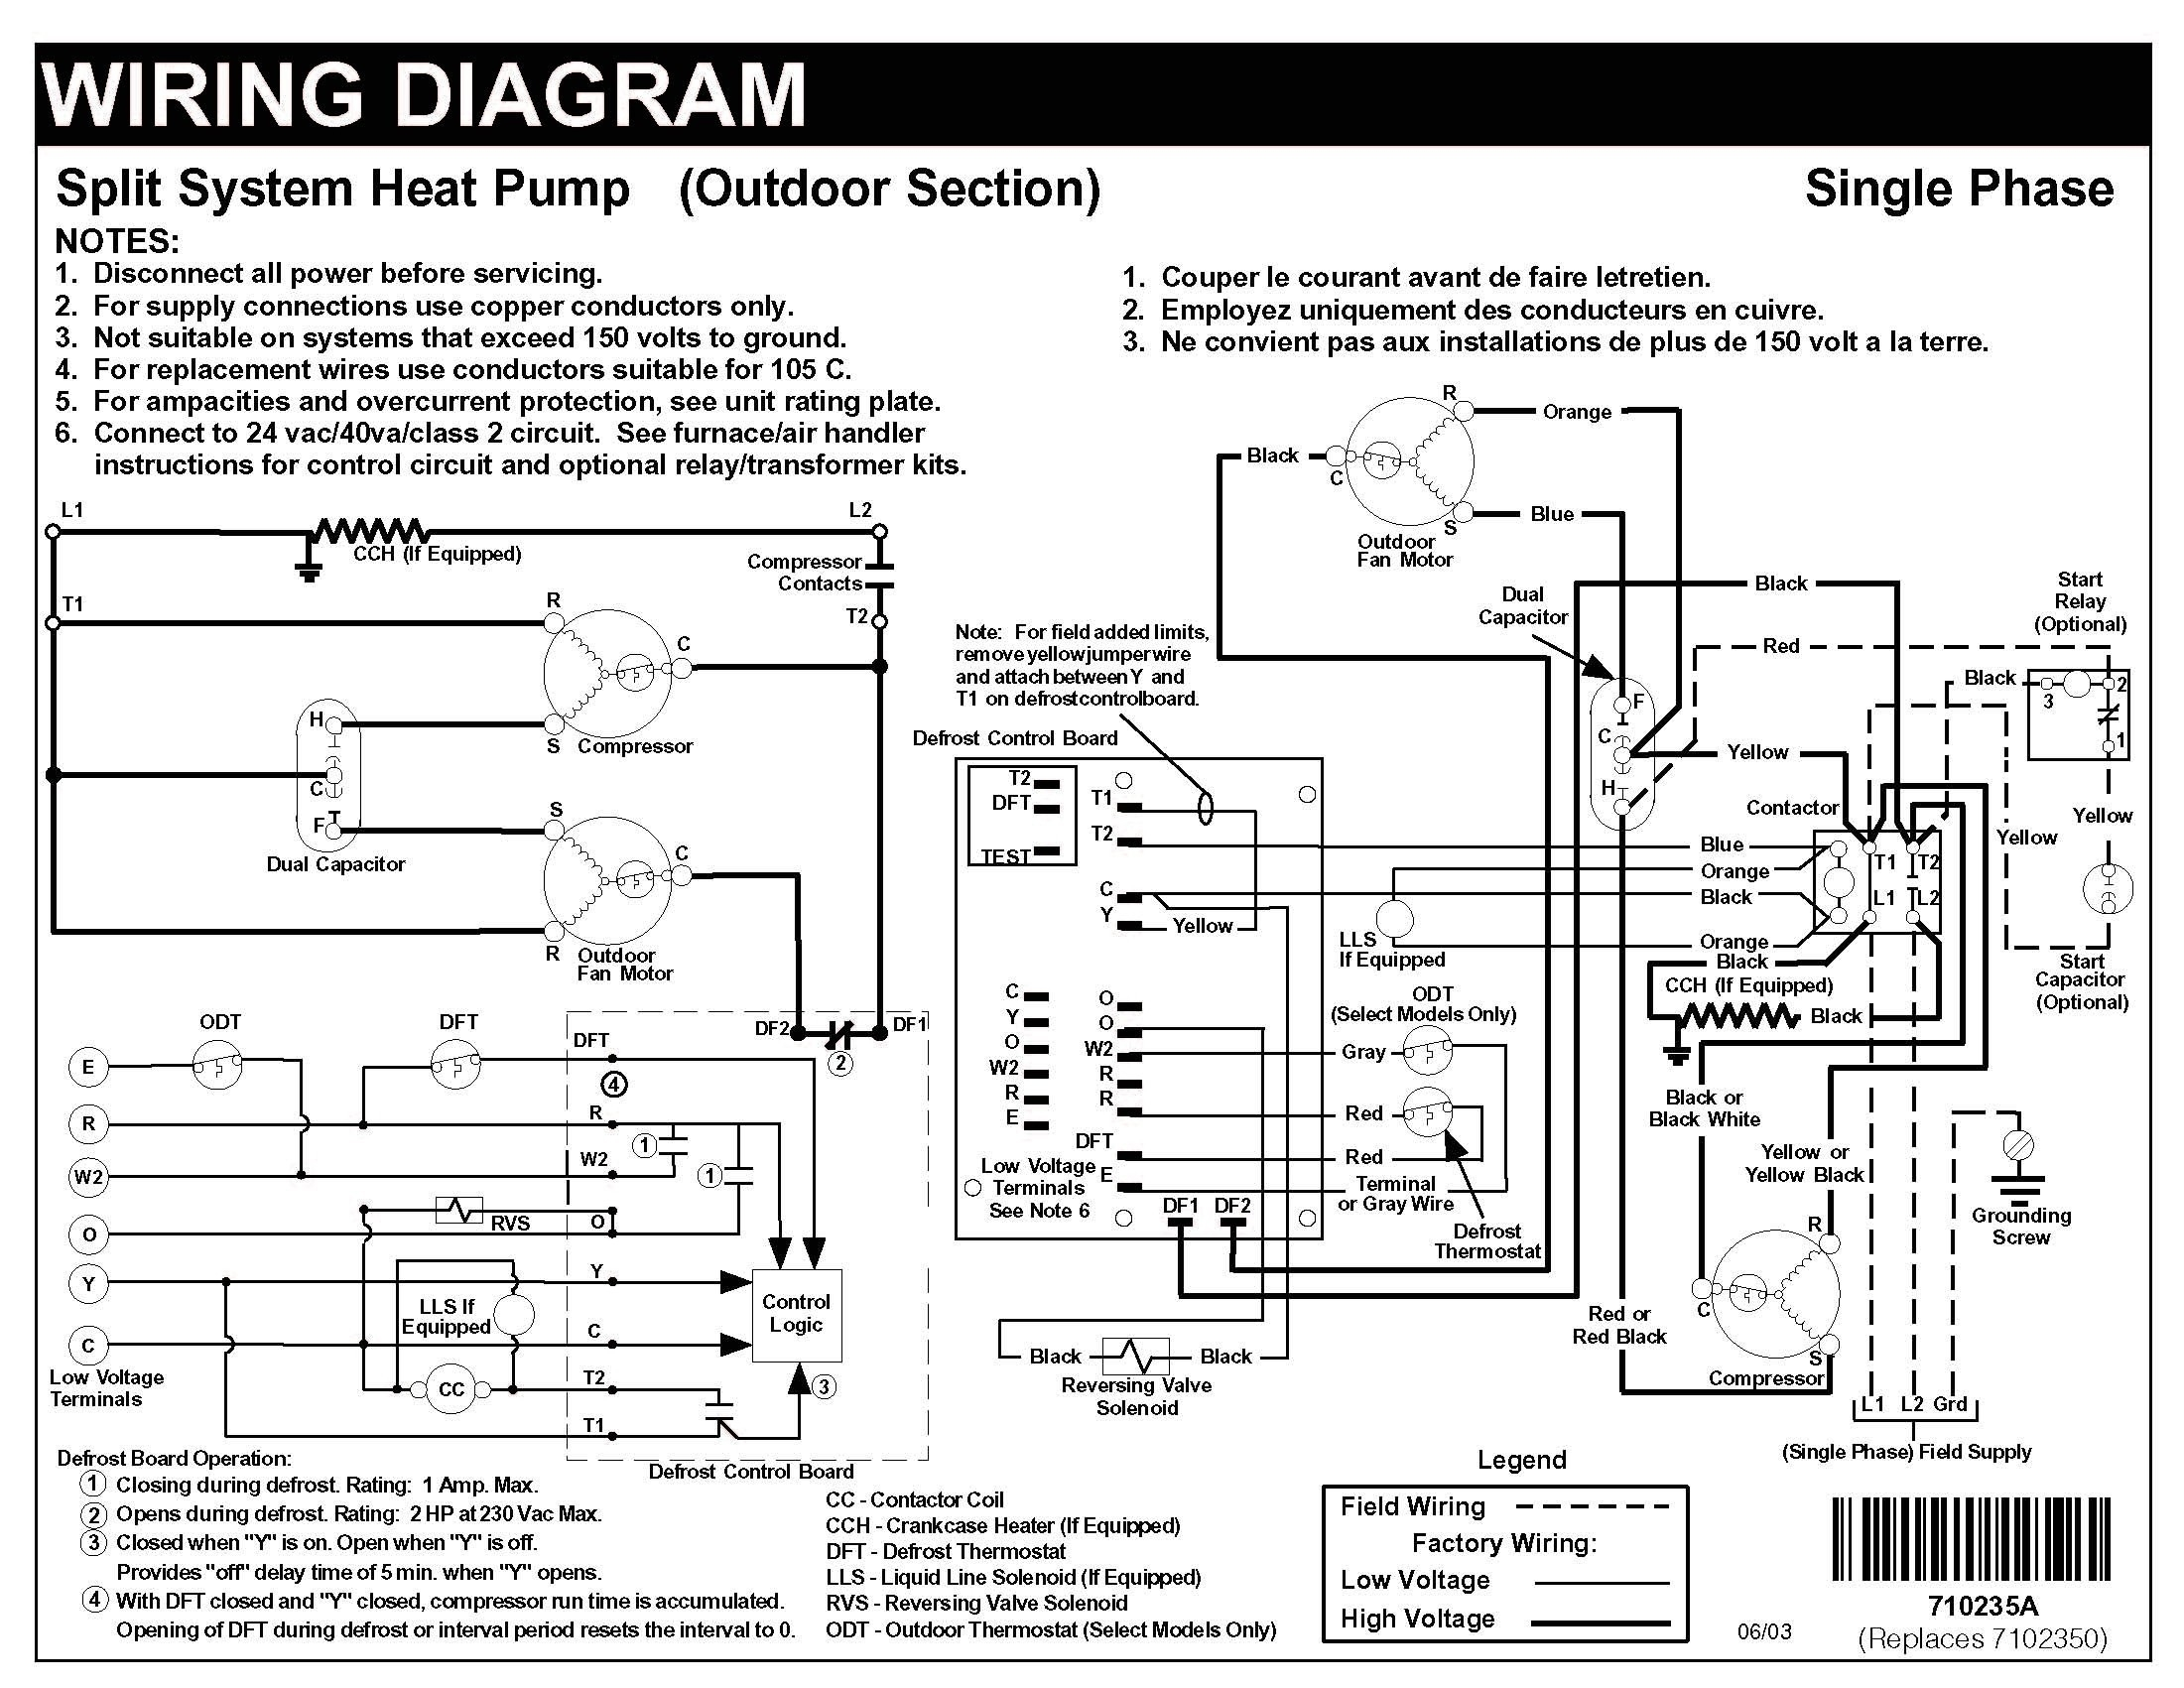 heat pump wiring diagram schematic Collection-Luxaire Electric Furnace Wiring Diagram New Payne Heat Pump Wiring Diagram Schematic Diy Wiring Diagrams • 20-j